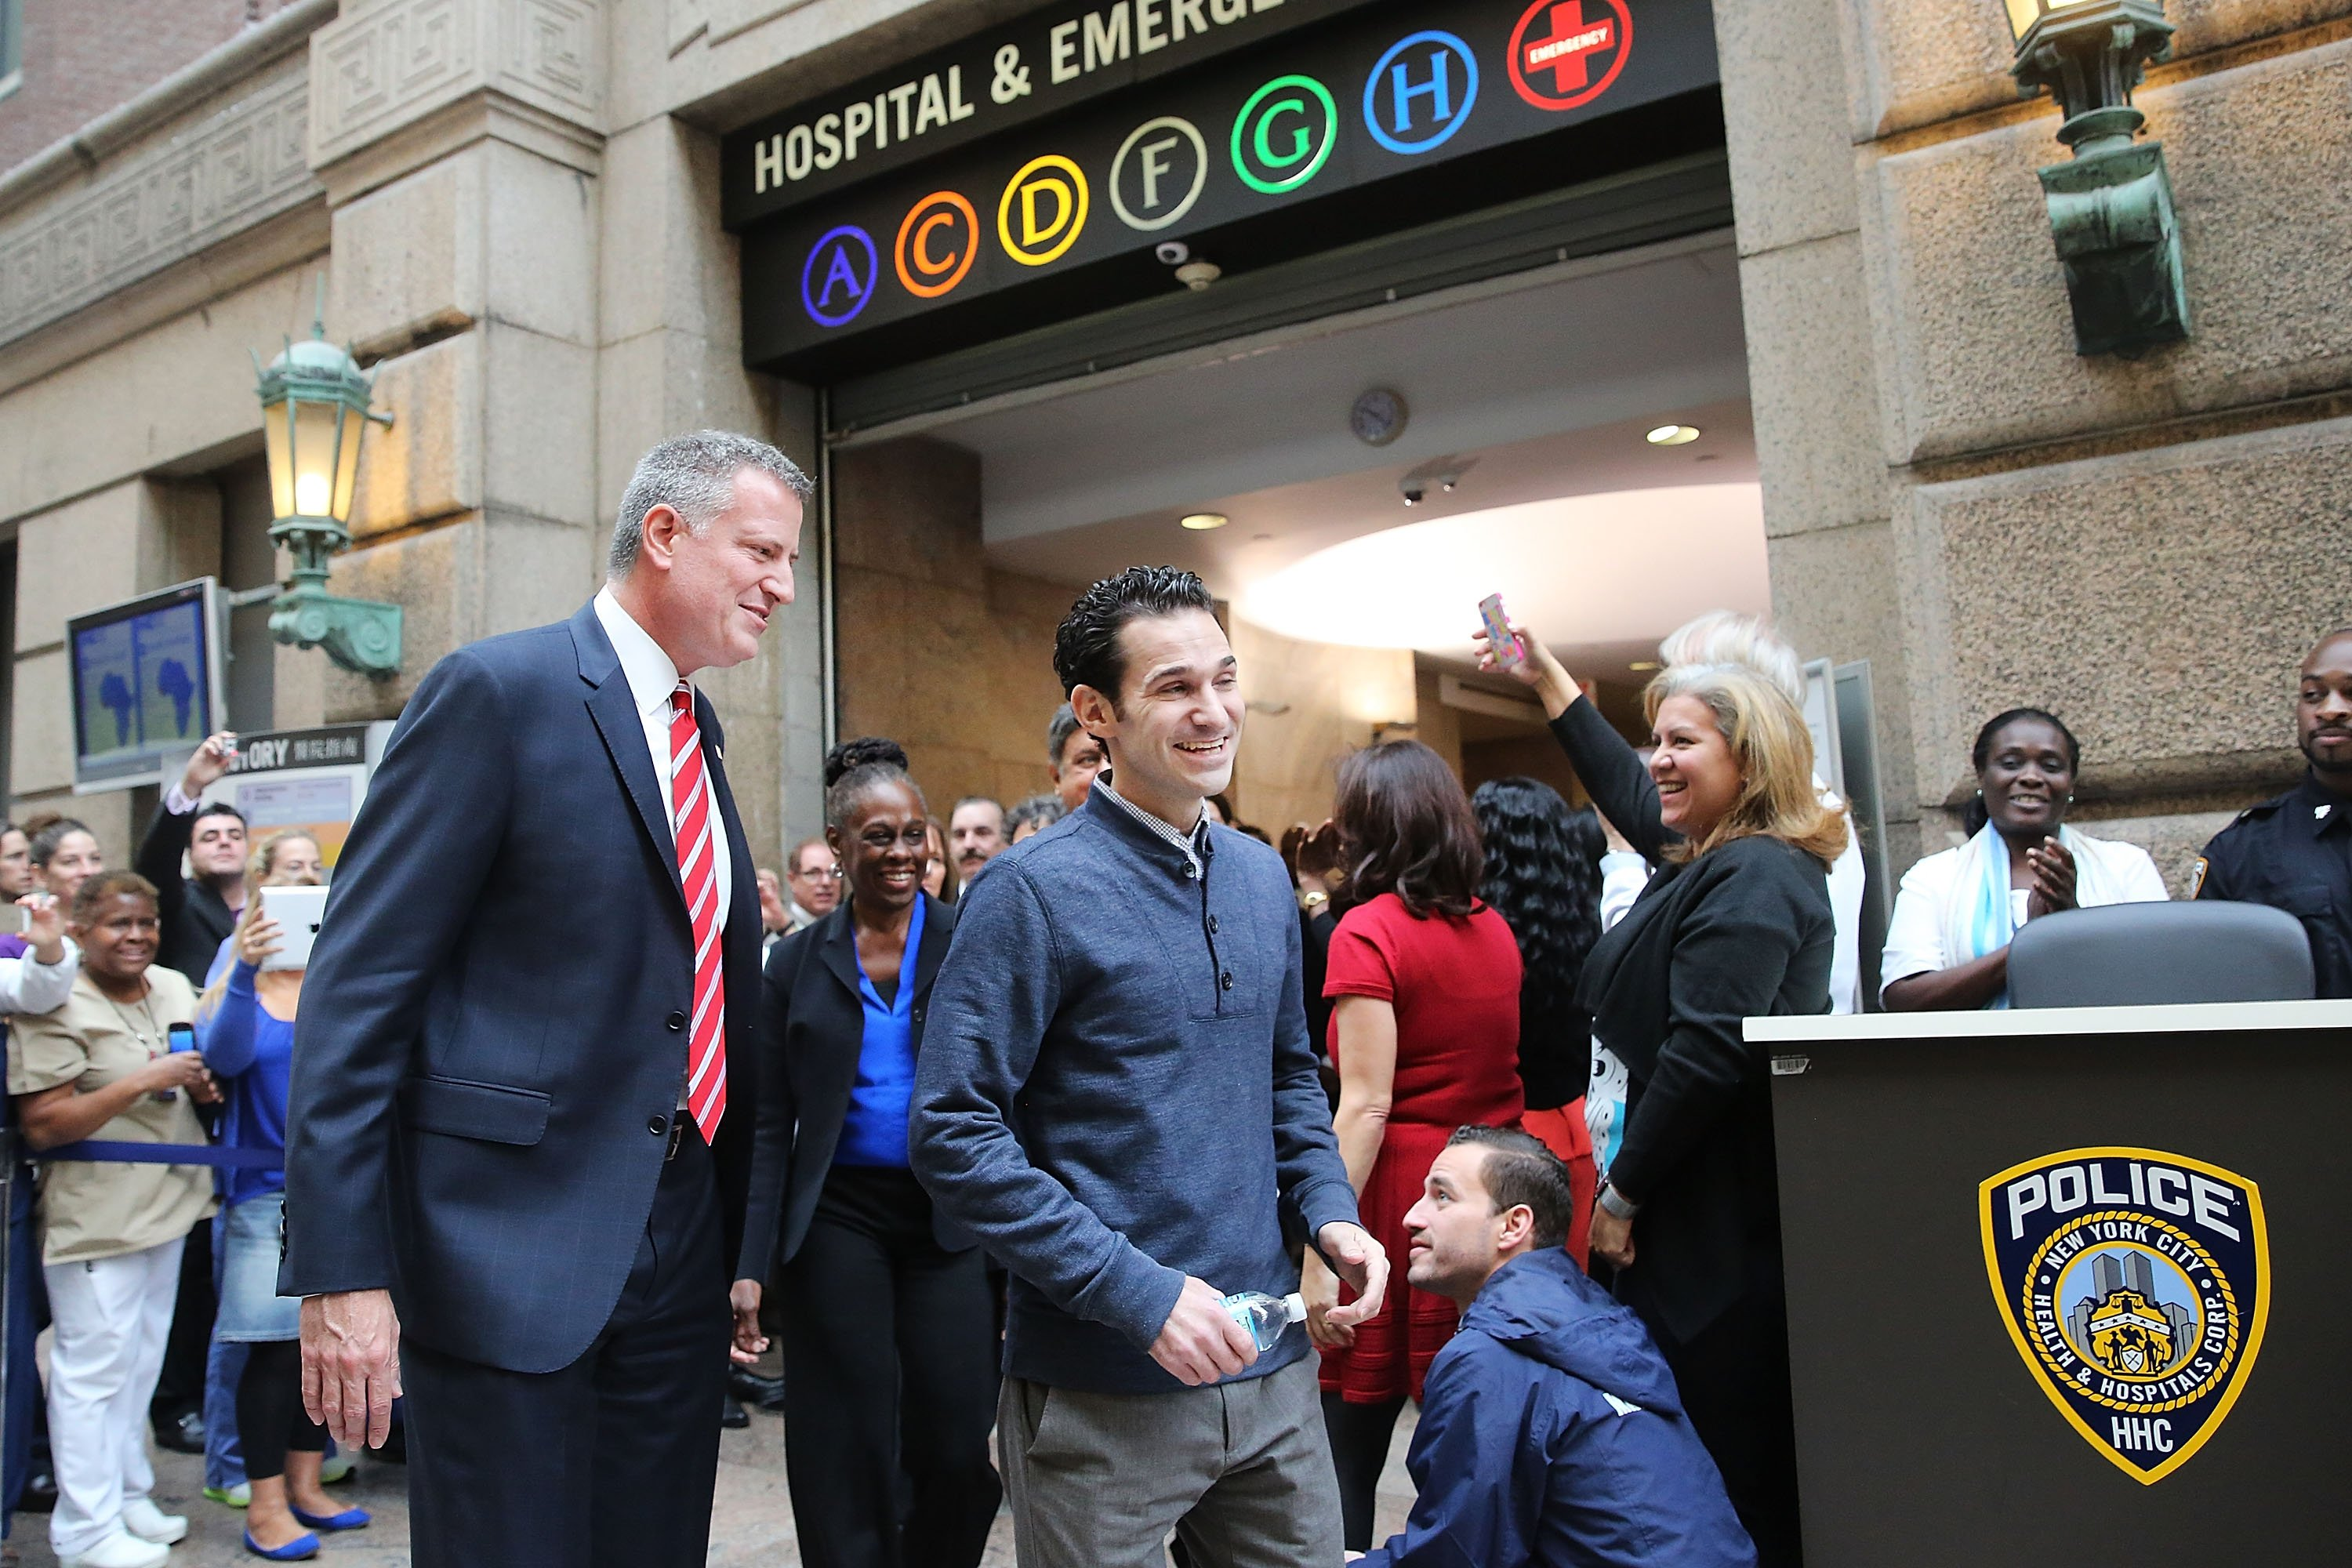 Dr. Craig Spencer walks with Bill de Blasio at a news conference at New York's Bellevue Hospital after being declared free of Ebola on November 11, 2014 in New York City. (Photo by Spencer Platt/Getty Images)